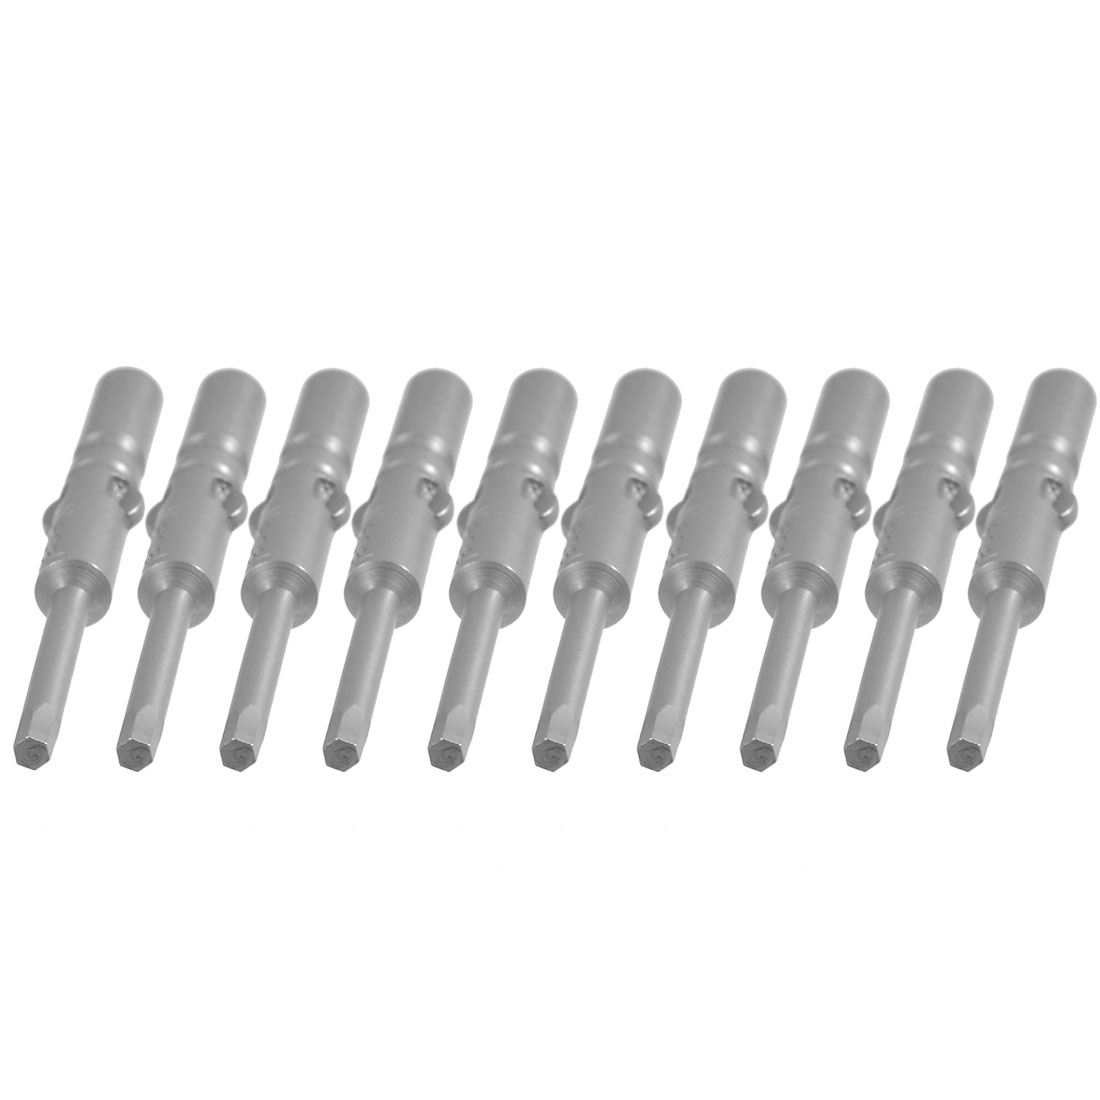 10 Pcs Round Shank 60mm Long 2.5mm Hexagon Tip Hex Head Screwdriver Bits